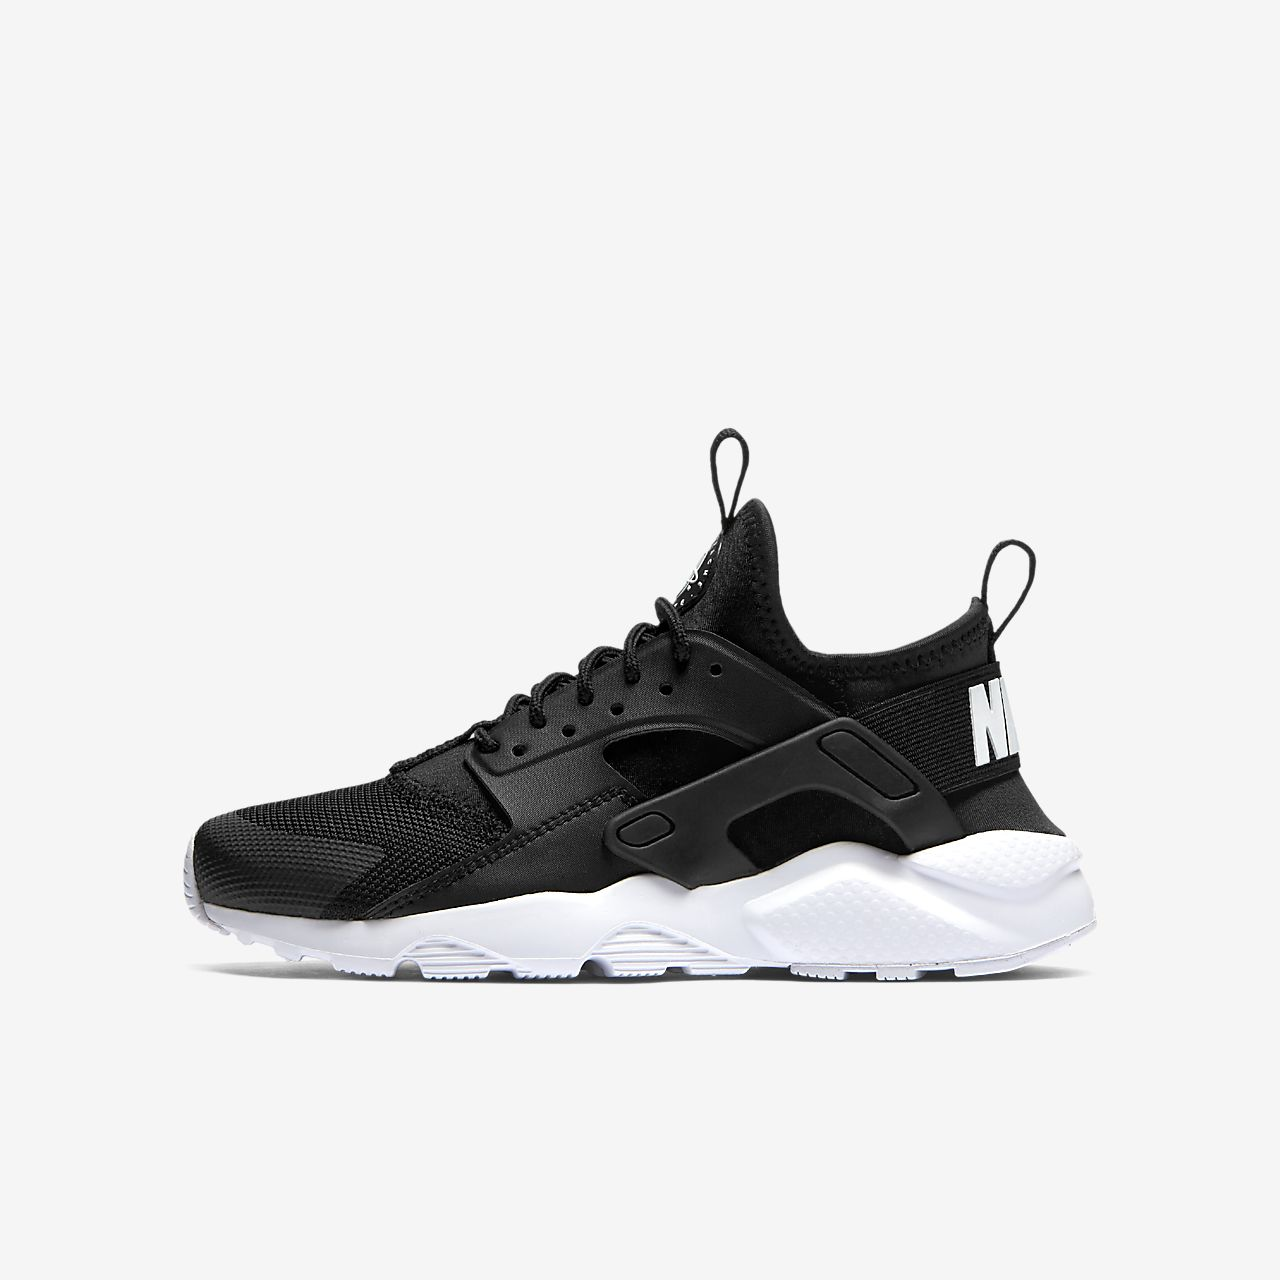 premium selection afd1f 7505f ... Nike Air Huarache Ultra Older Kids Shoe